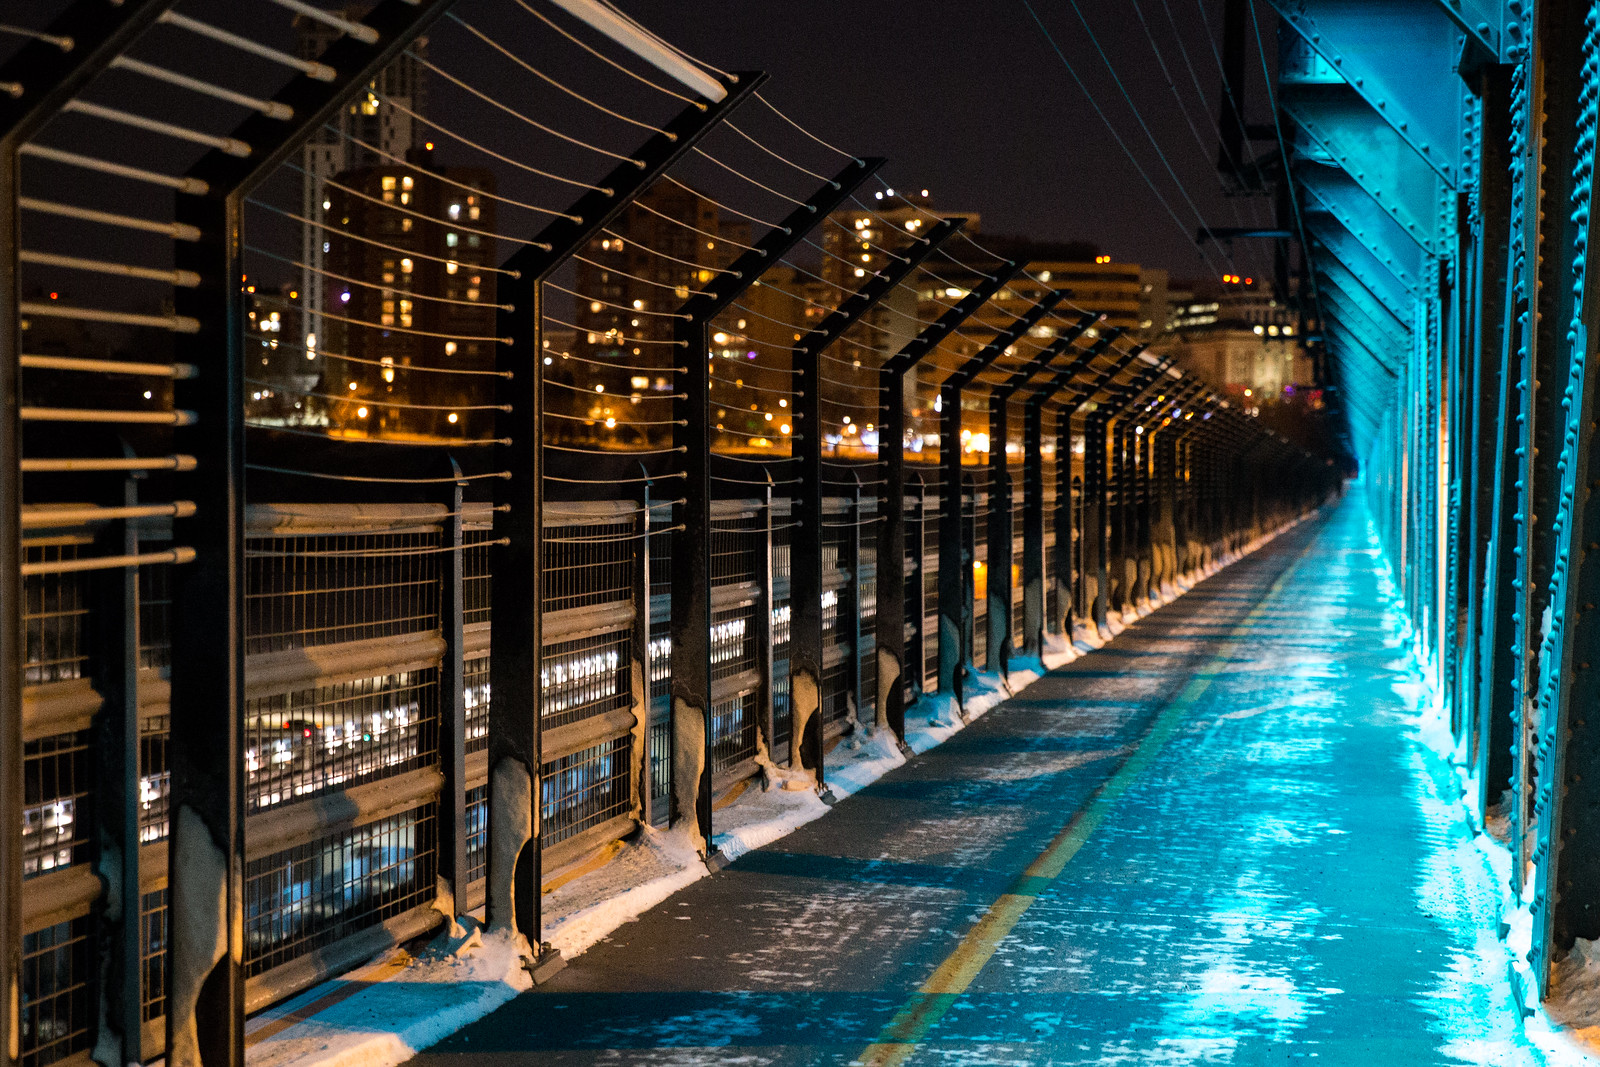 Anti-suicide fences & LEDs are some of the most recent additions to the bridge. Photo by Mack Male.